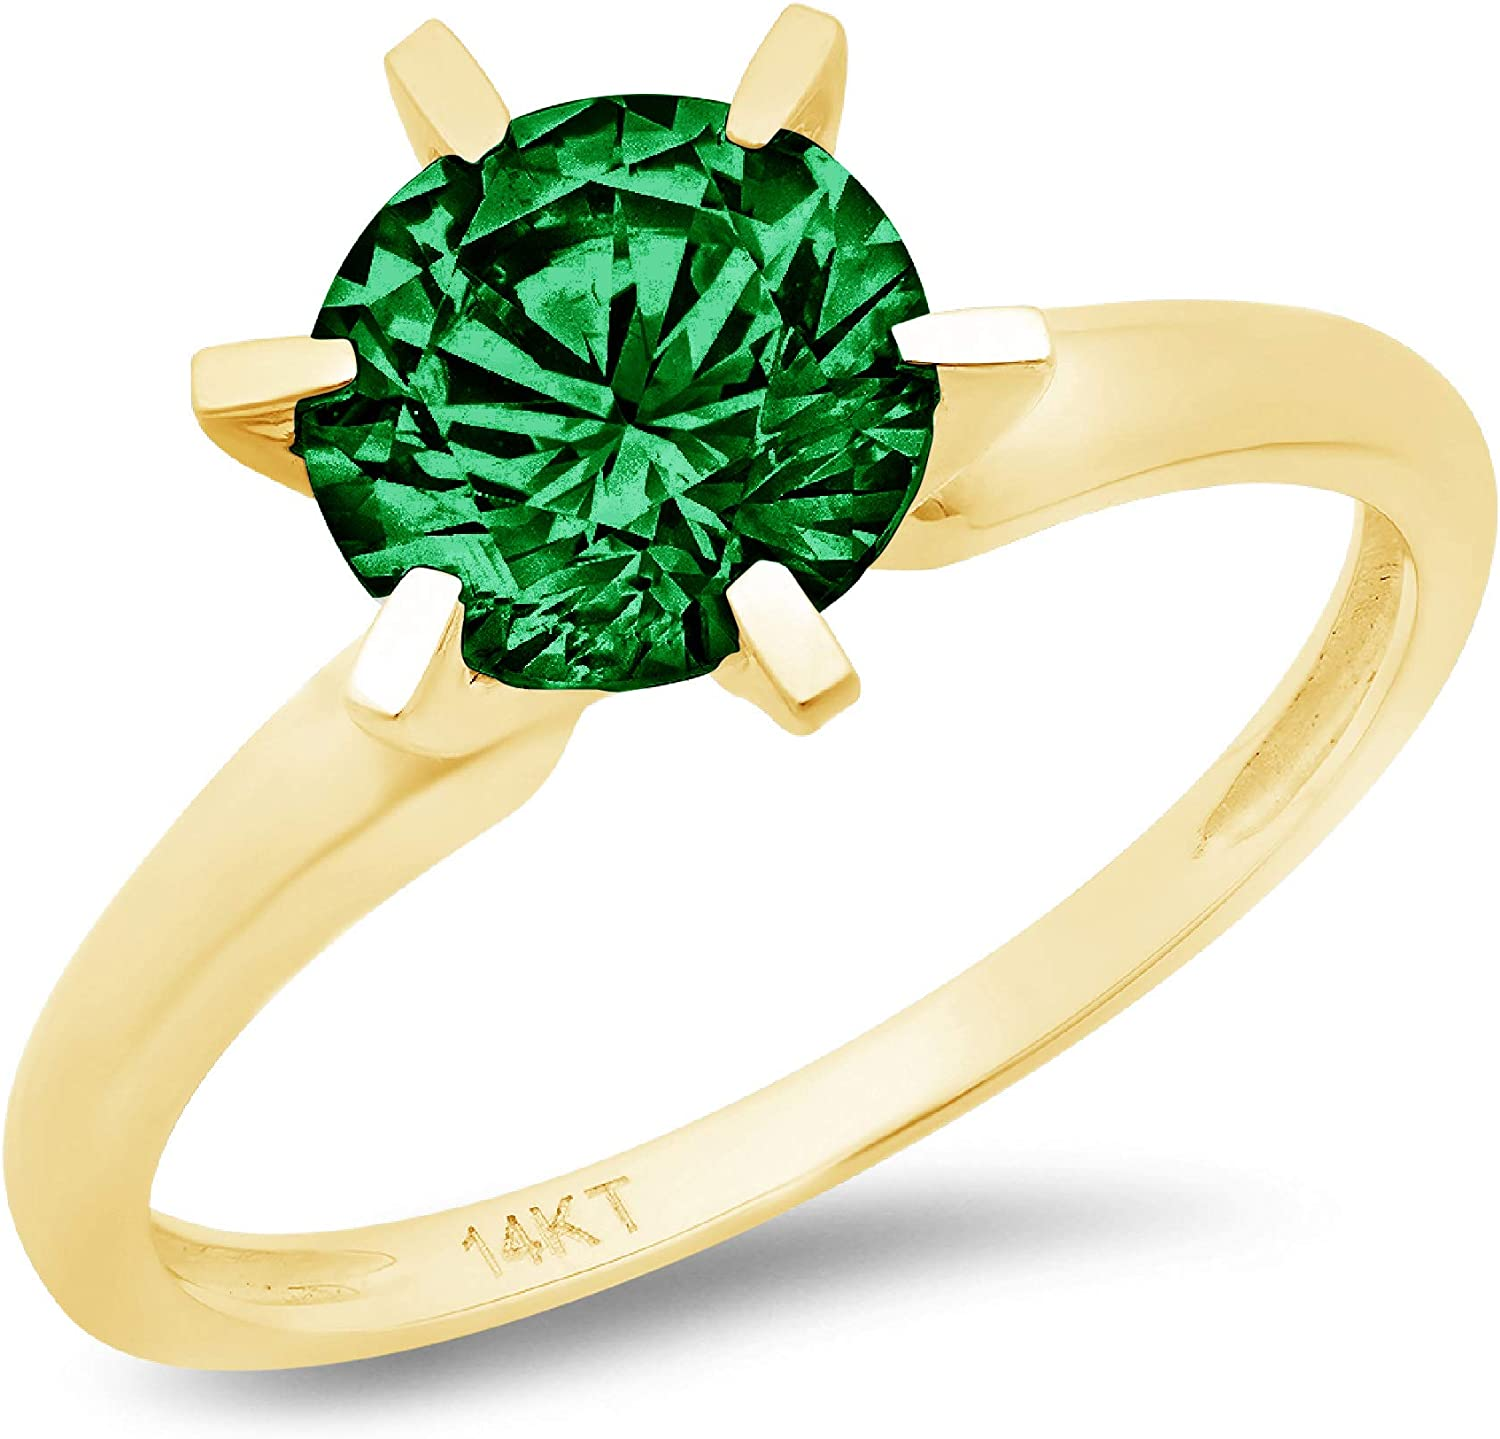 Max 40% OFF 0.9ct Brilliant Round Cut Solitaire Max 55% OFF Simulated Flawless Zir Cubic